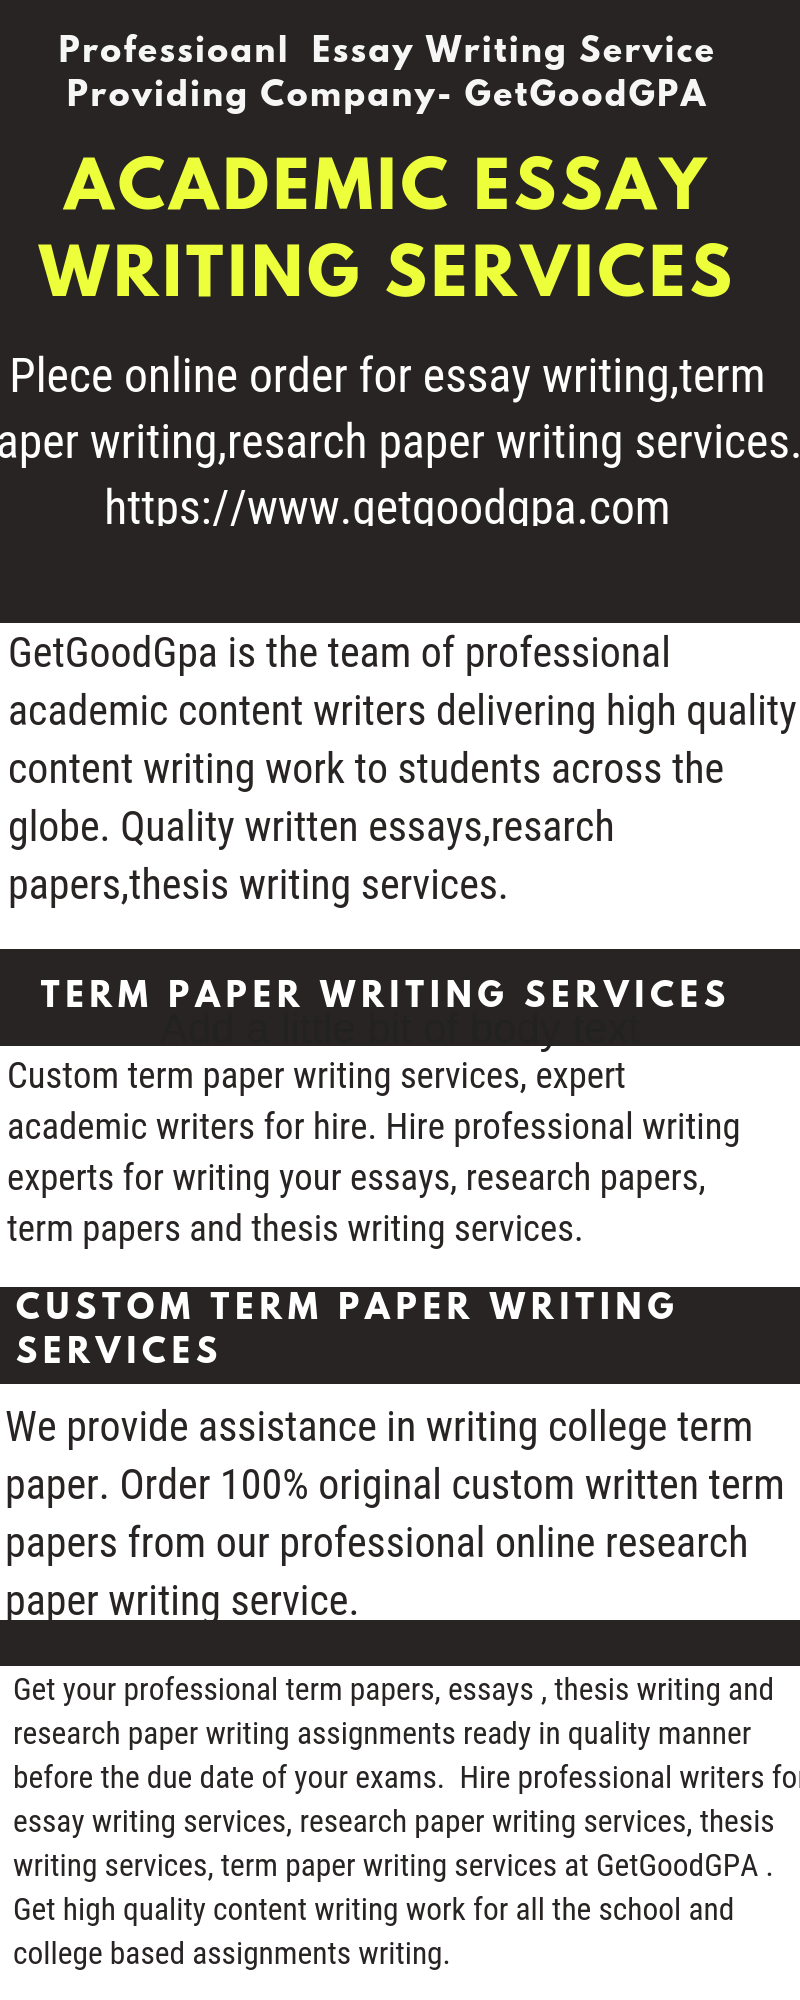 Narrative Essay Example For High School  Health Care Essay also Business Law Essays  Research Paper Custom Term Papers And  Museumlegs Essay About Good Health